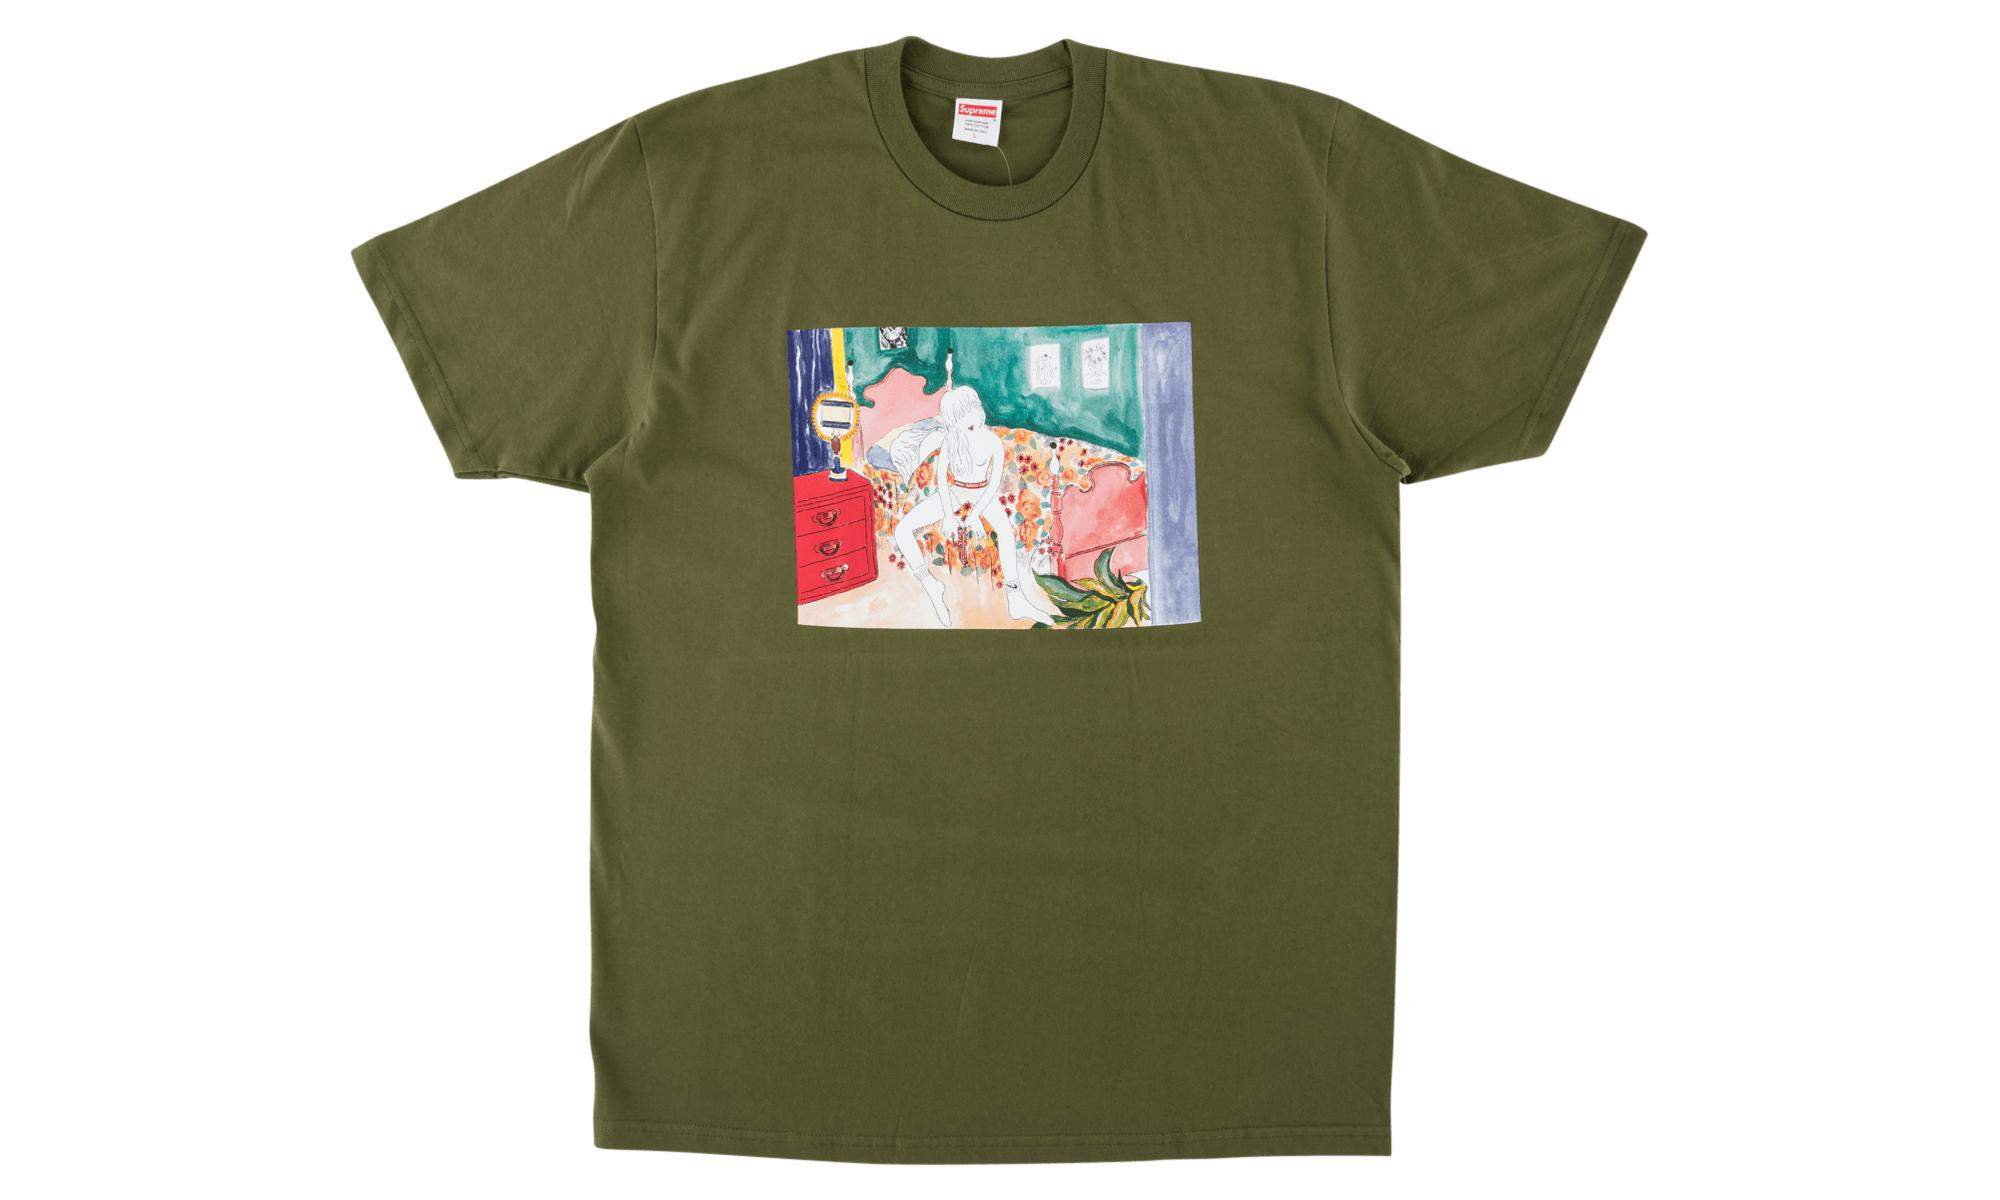 0fd7c3f7 Supreme - Green Madonna T-shirt 'fw18' for Men - Lyst. View fullscreen